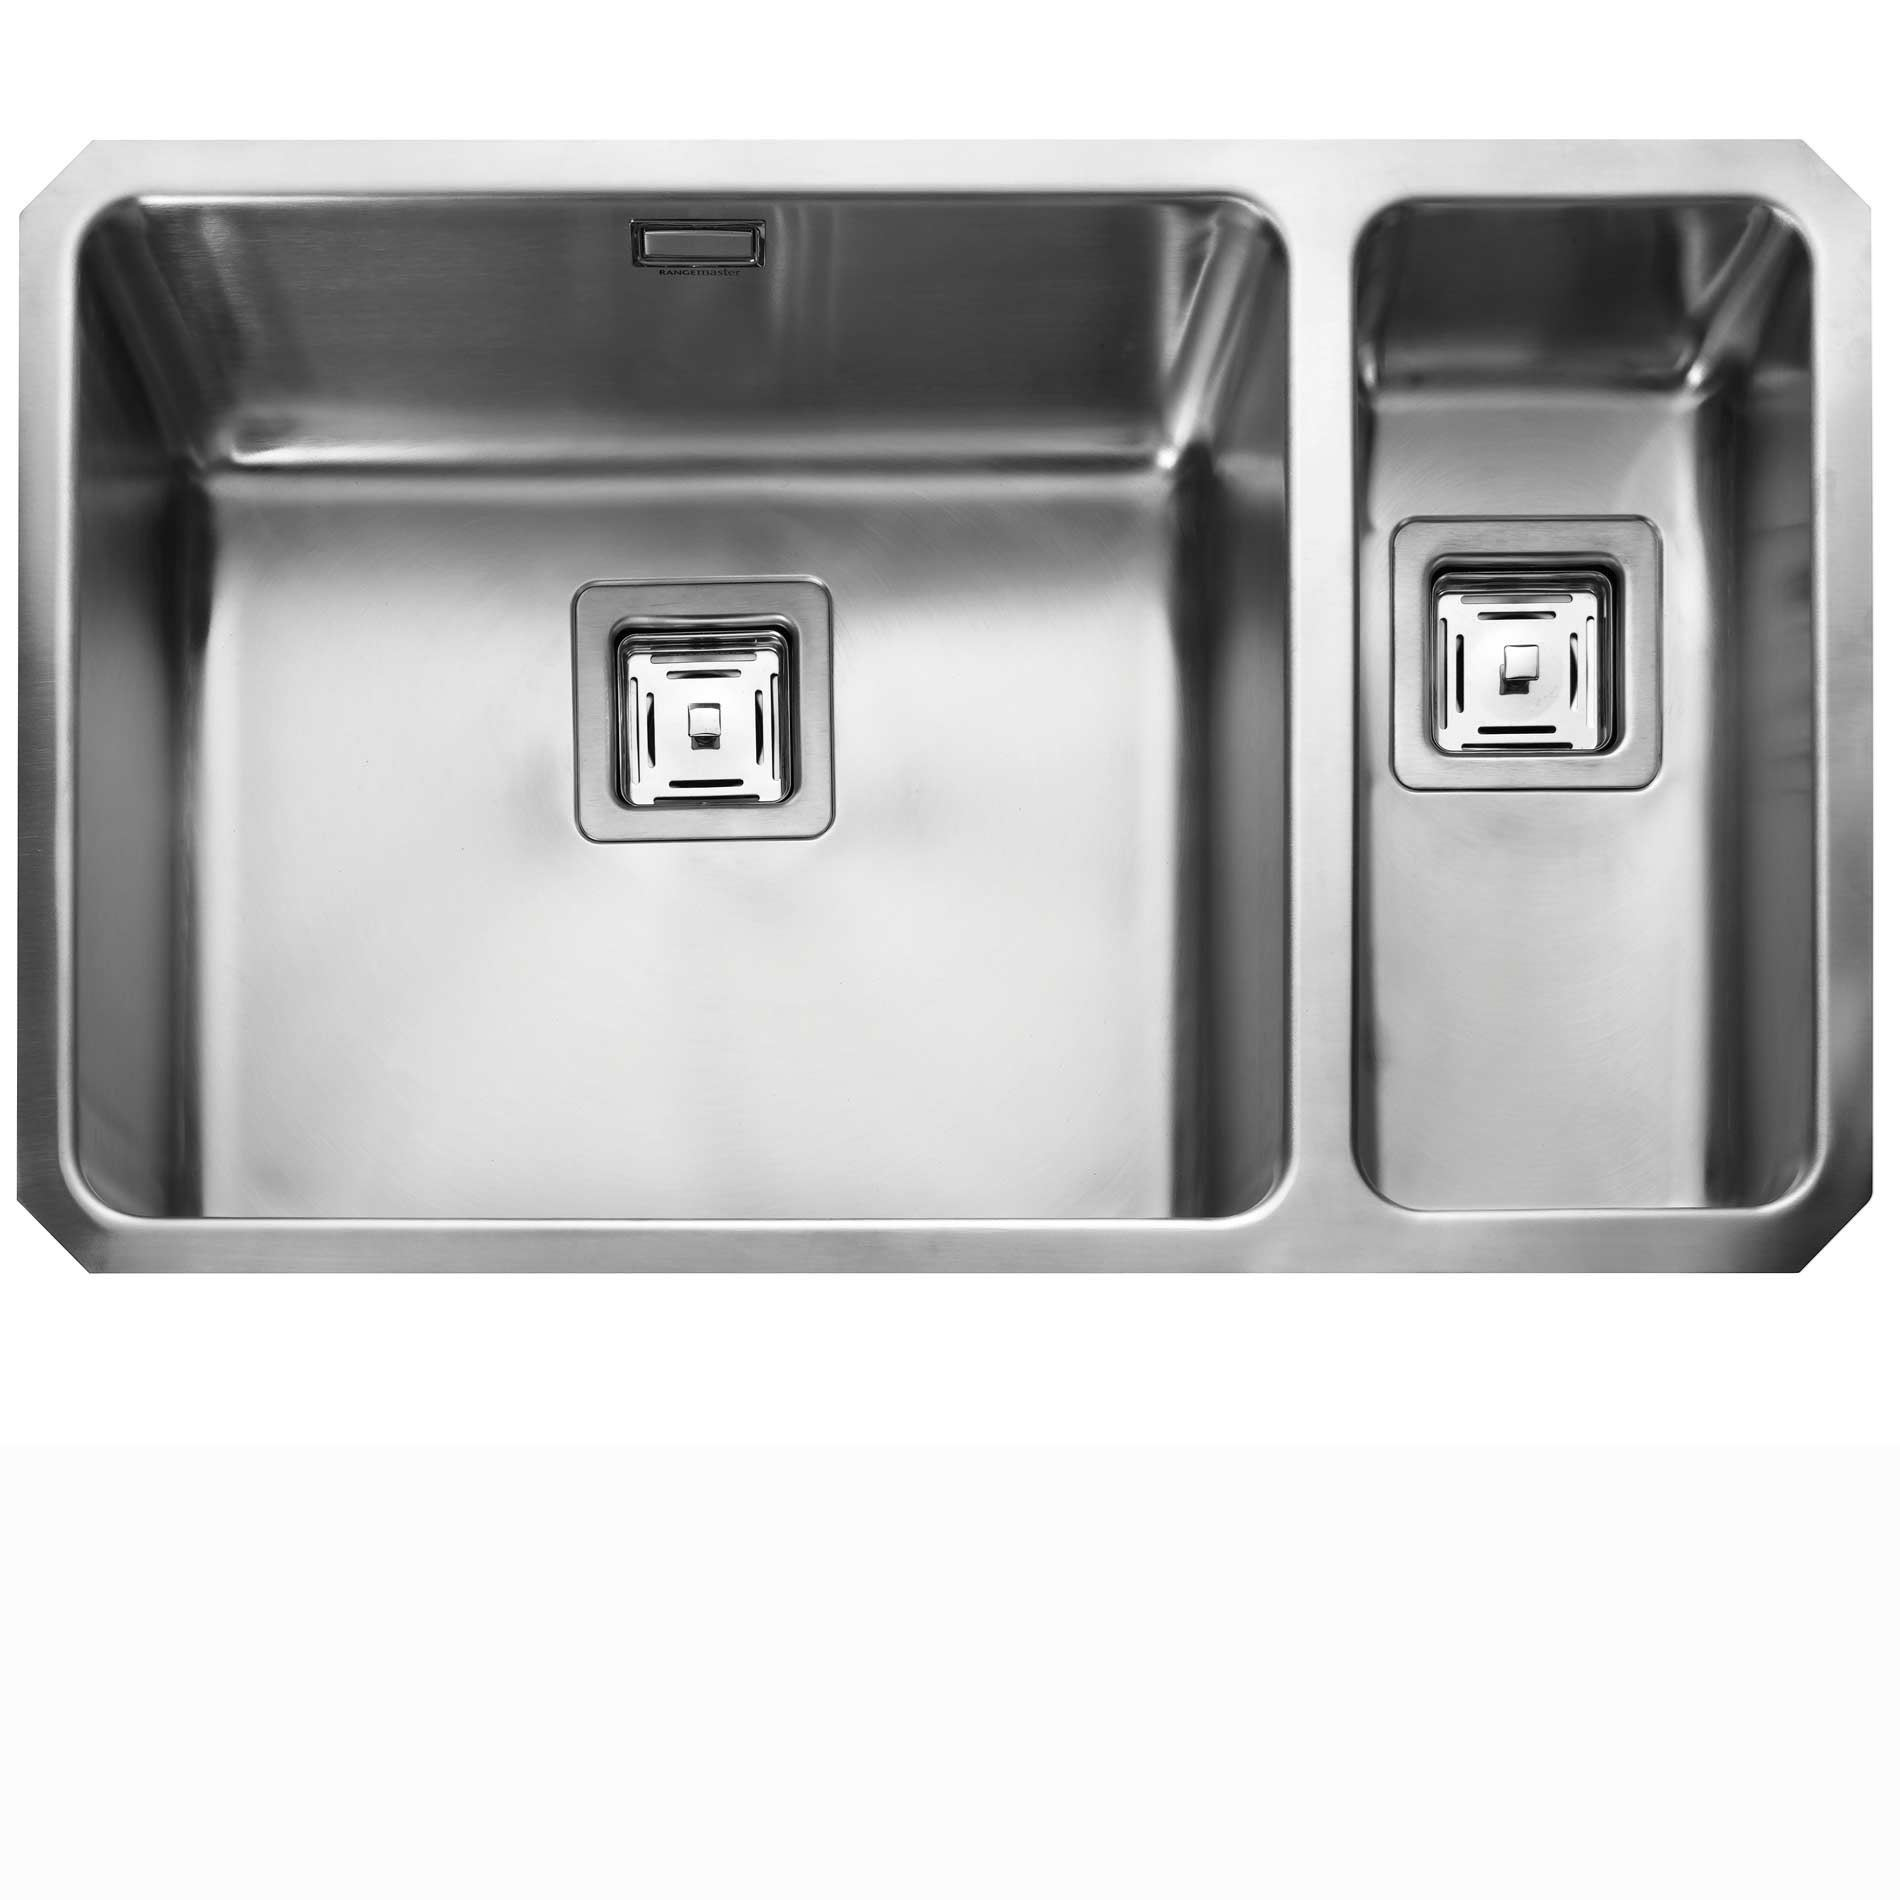 Rangemaster Kitchen Sinks Rangemaster atlantic quad qub4818 stainless steel sink kitchen picture of atlantic quad qub4818 stainless steel sink workwithnaturefo